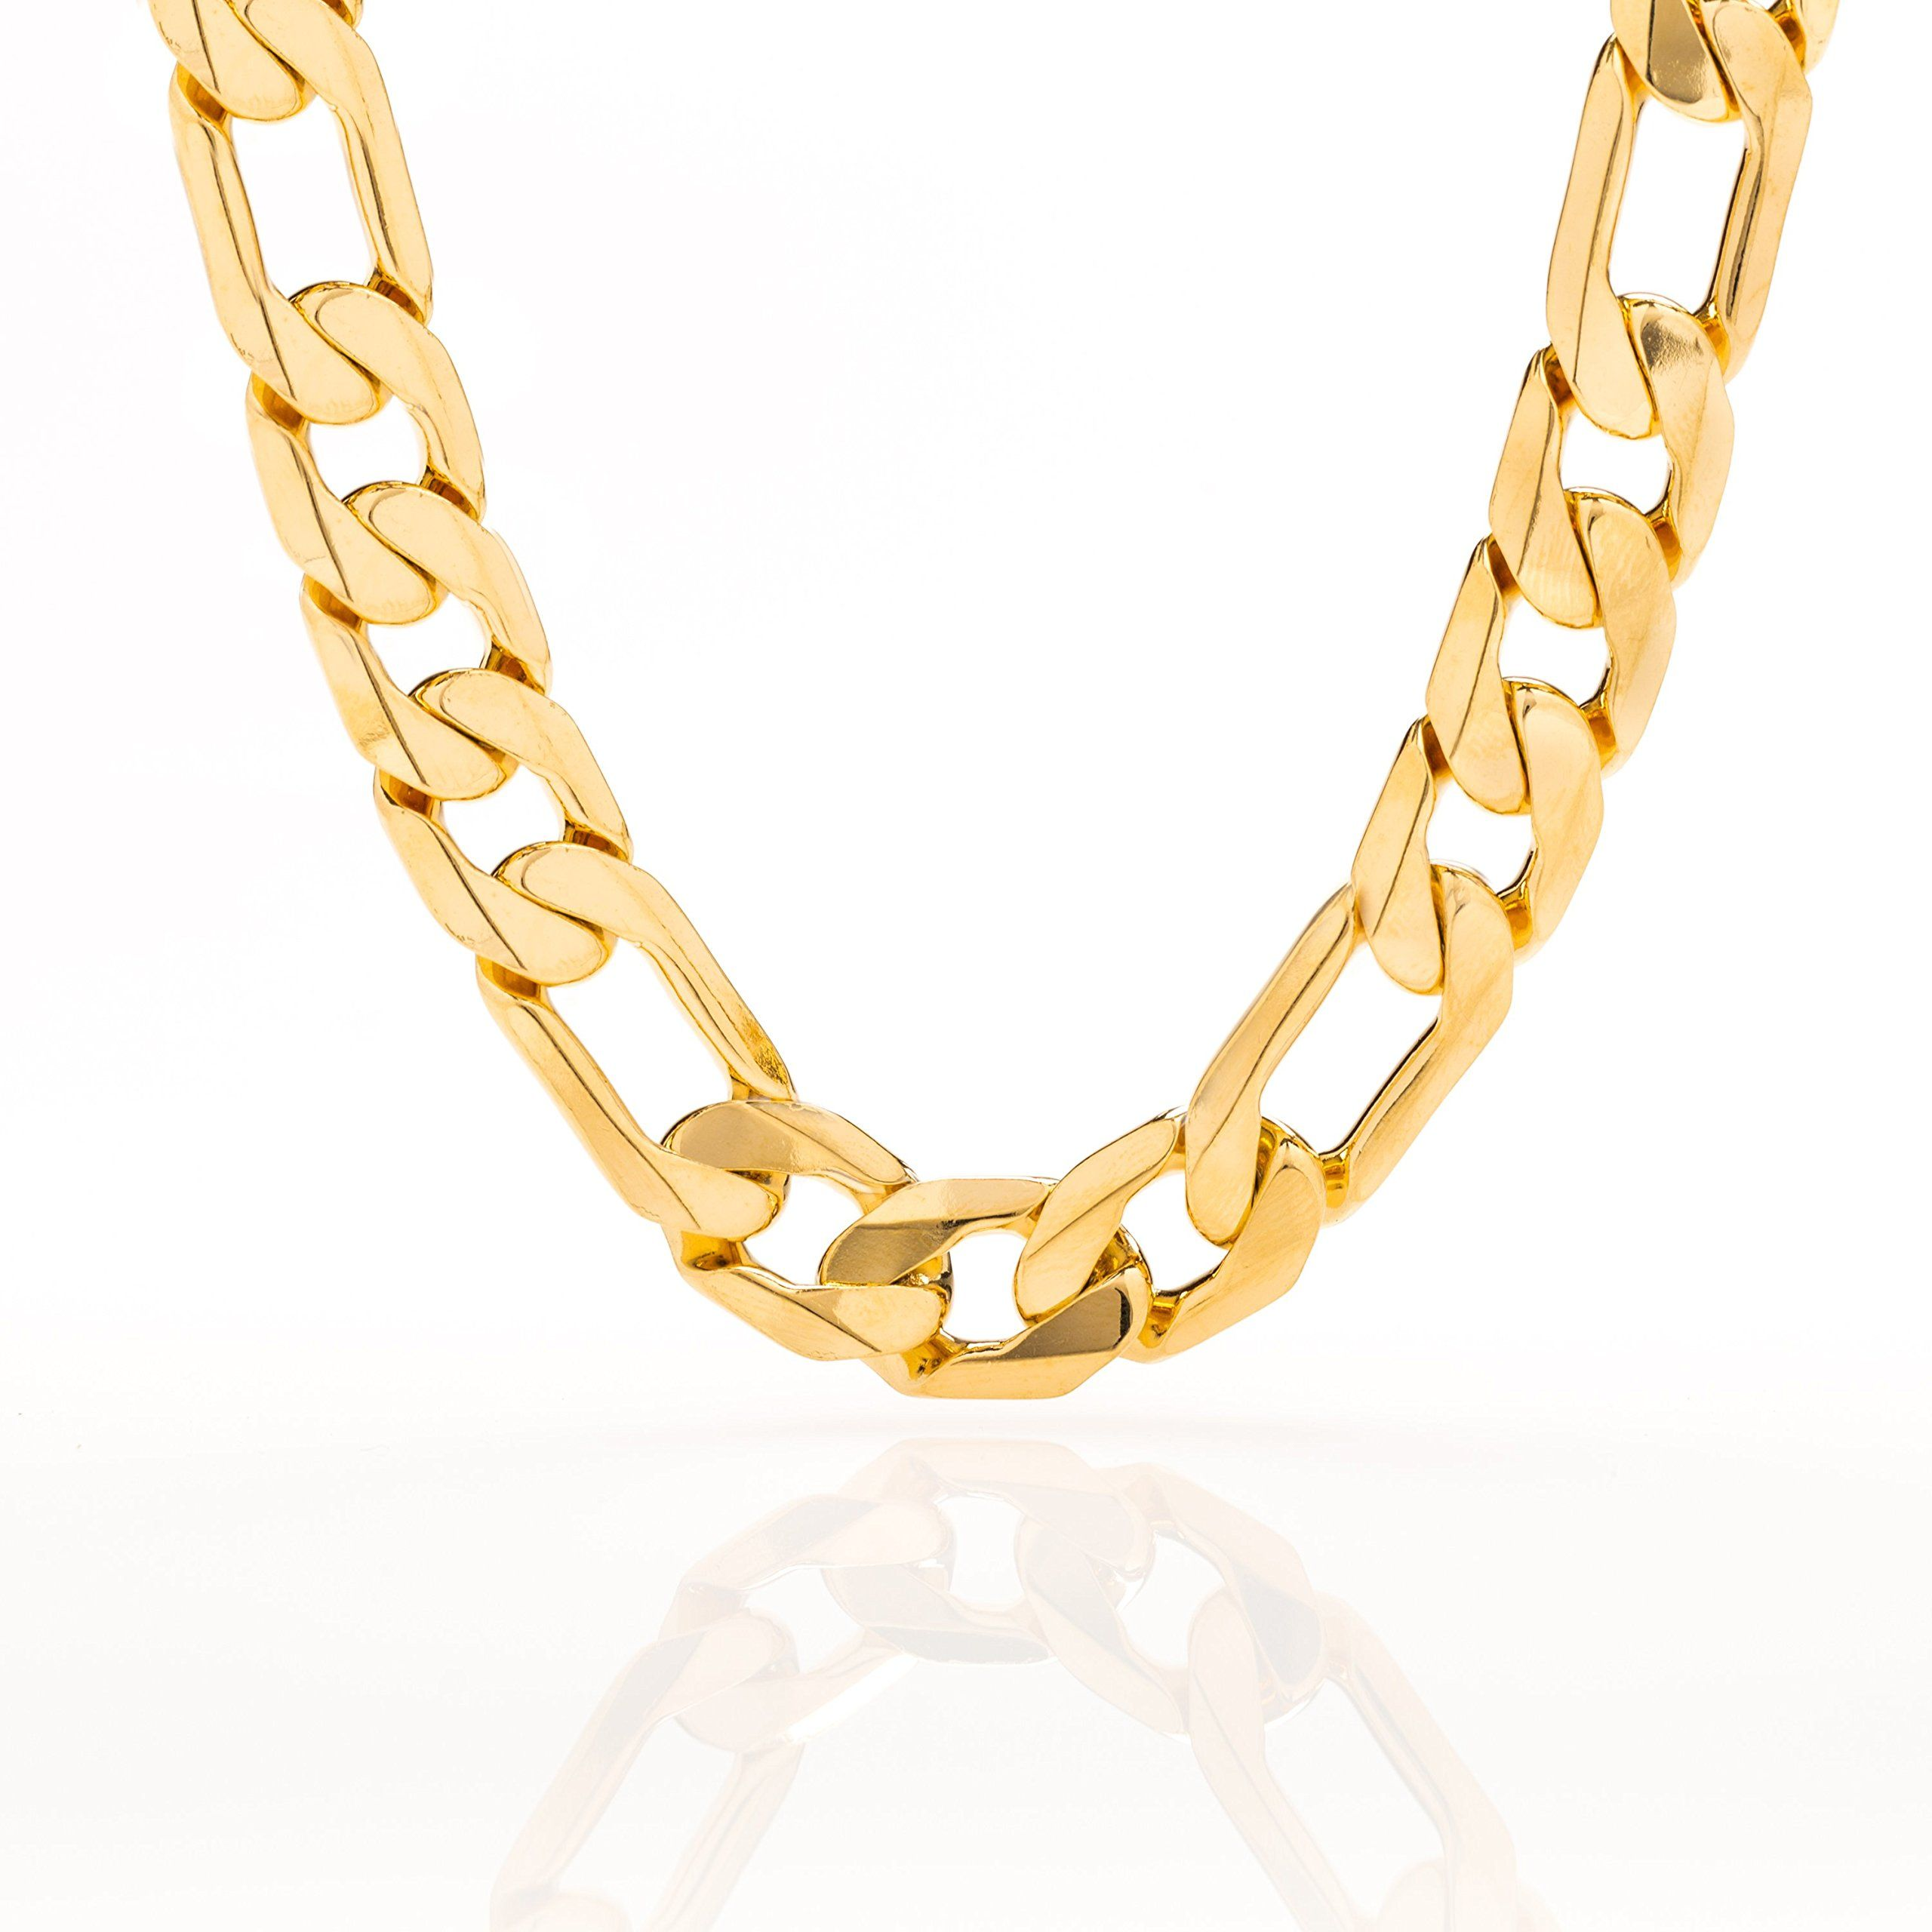 heroulo chains necklaces itshot at diamond lovely s men com mens gold